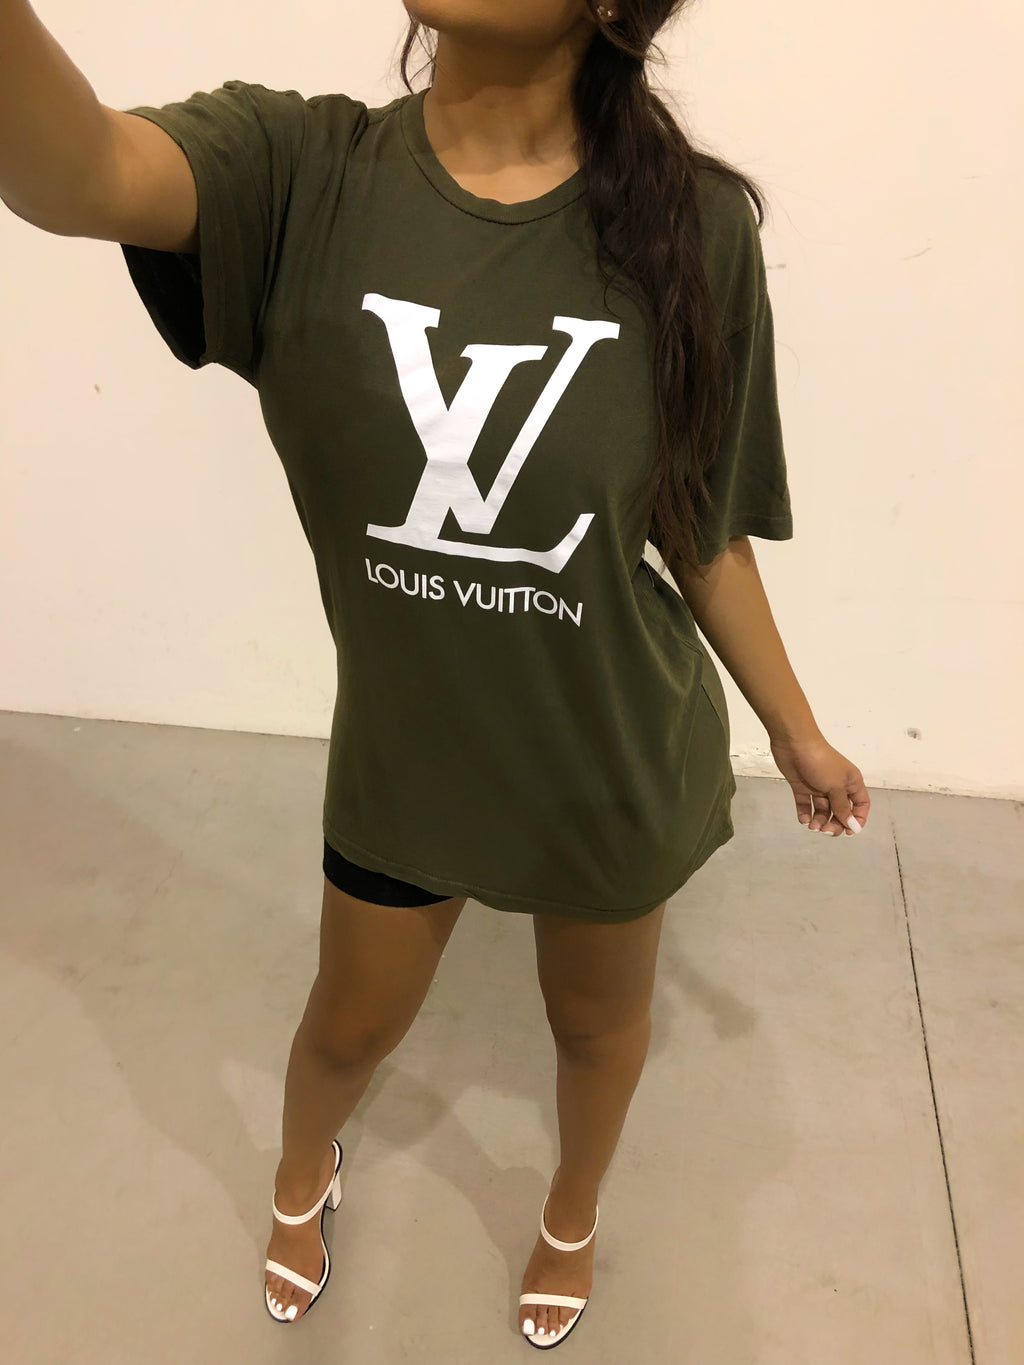 Louie Vuitton Vintage Unisex T-Shirt - Olive Green